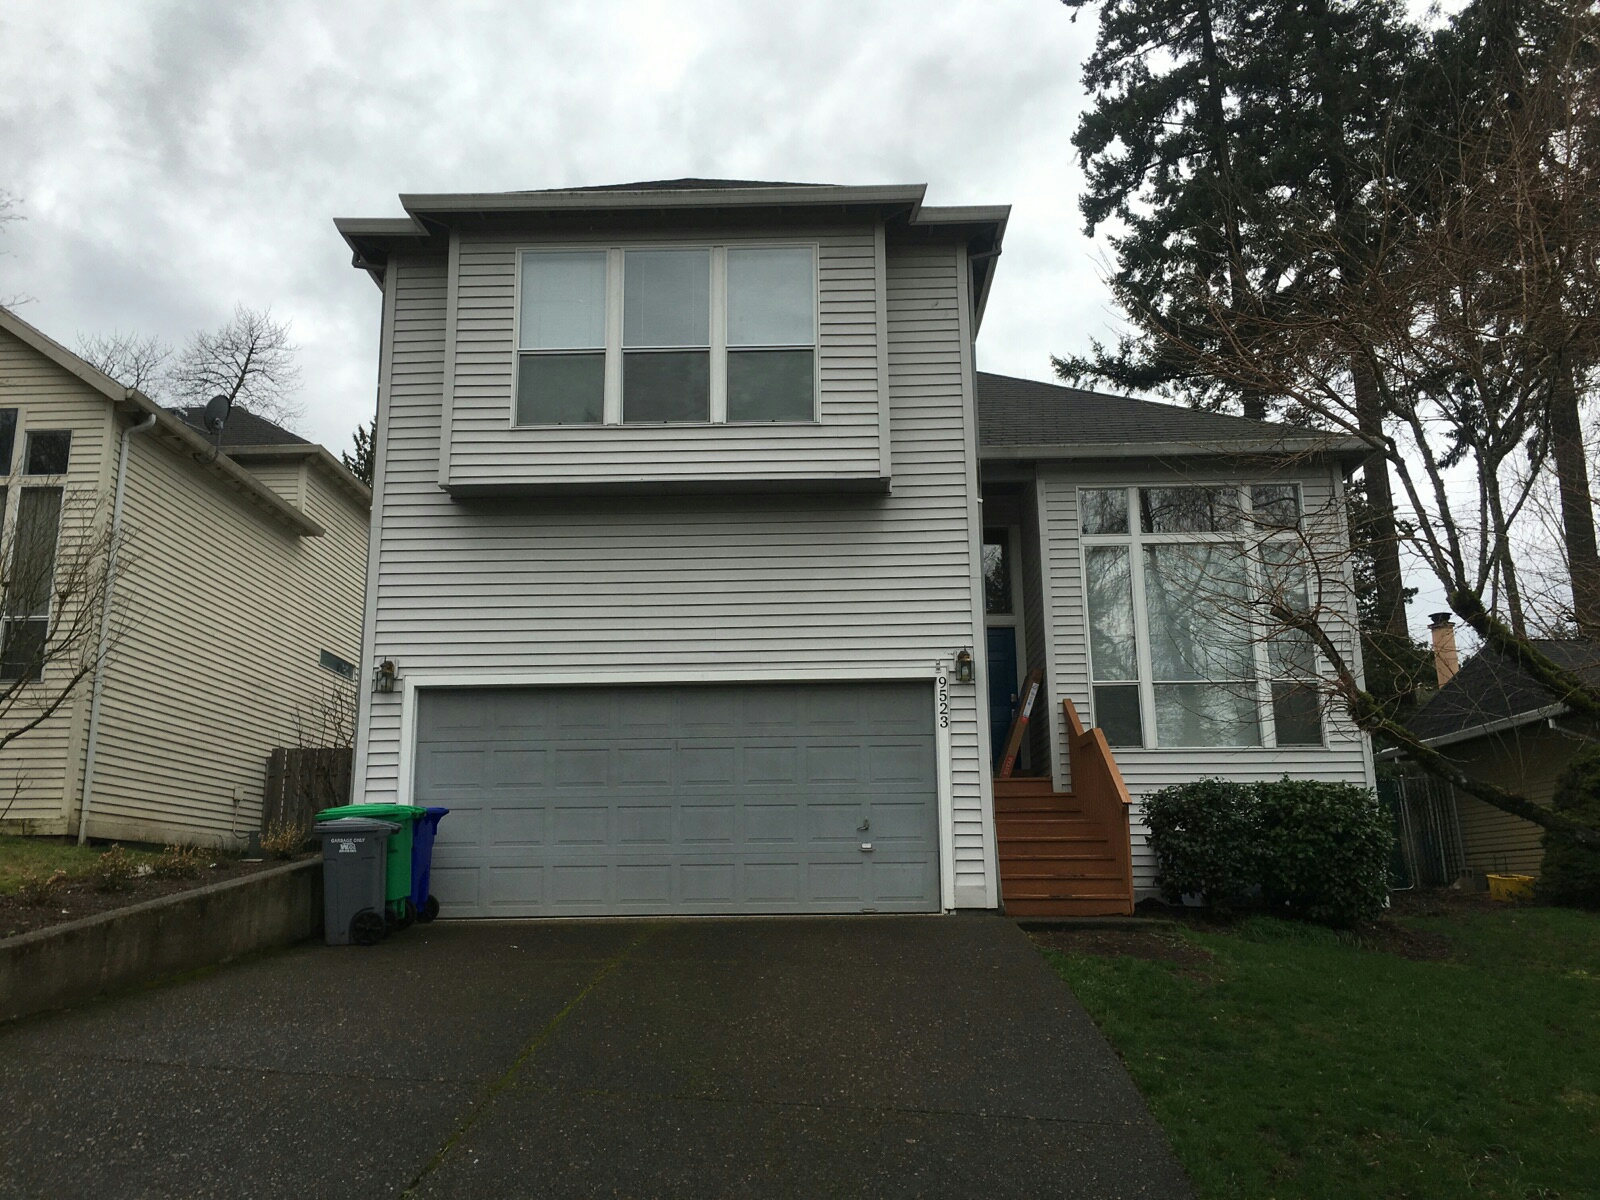 Tualatin, OR - Vinyl siding replacement with new James Hardie siding. Replacing old vinyl siding and replacing it with new primed hardiplank siding.